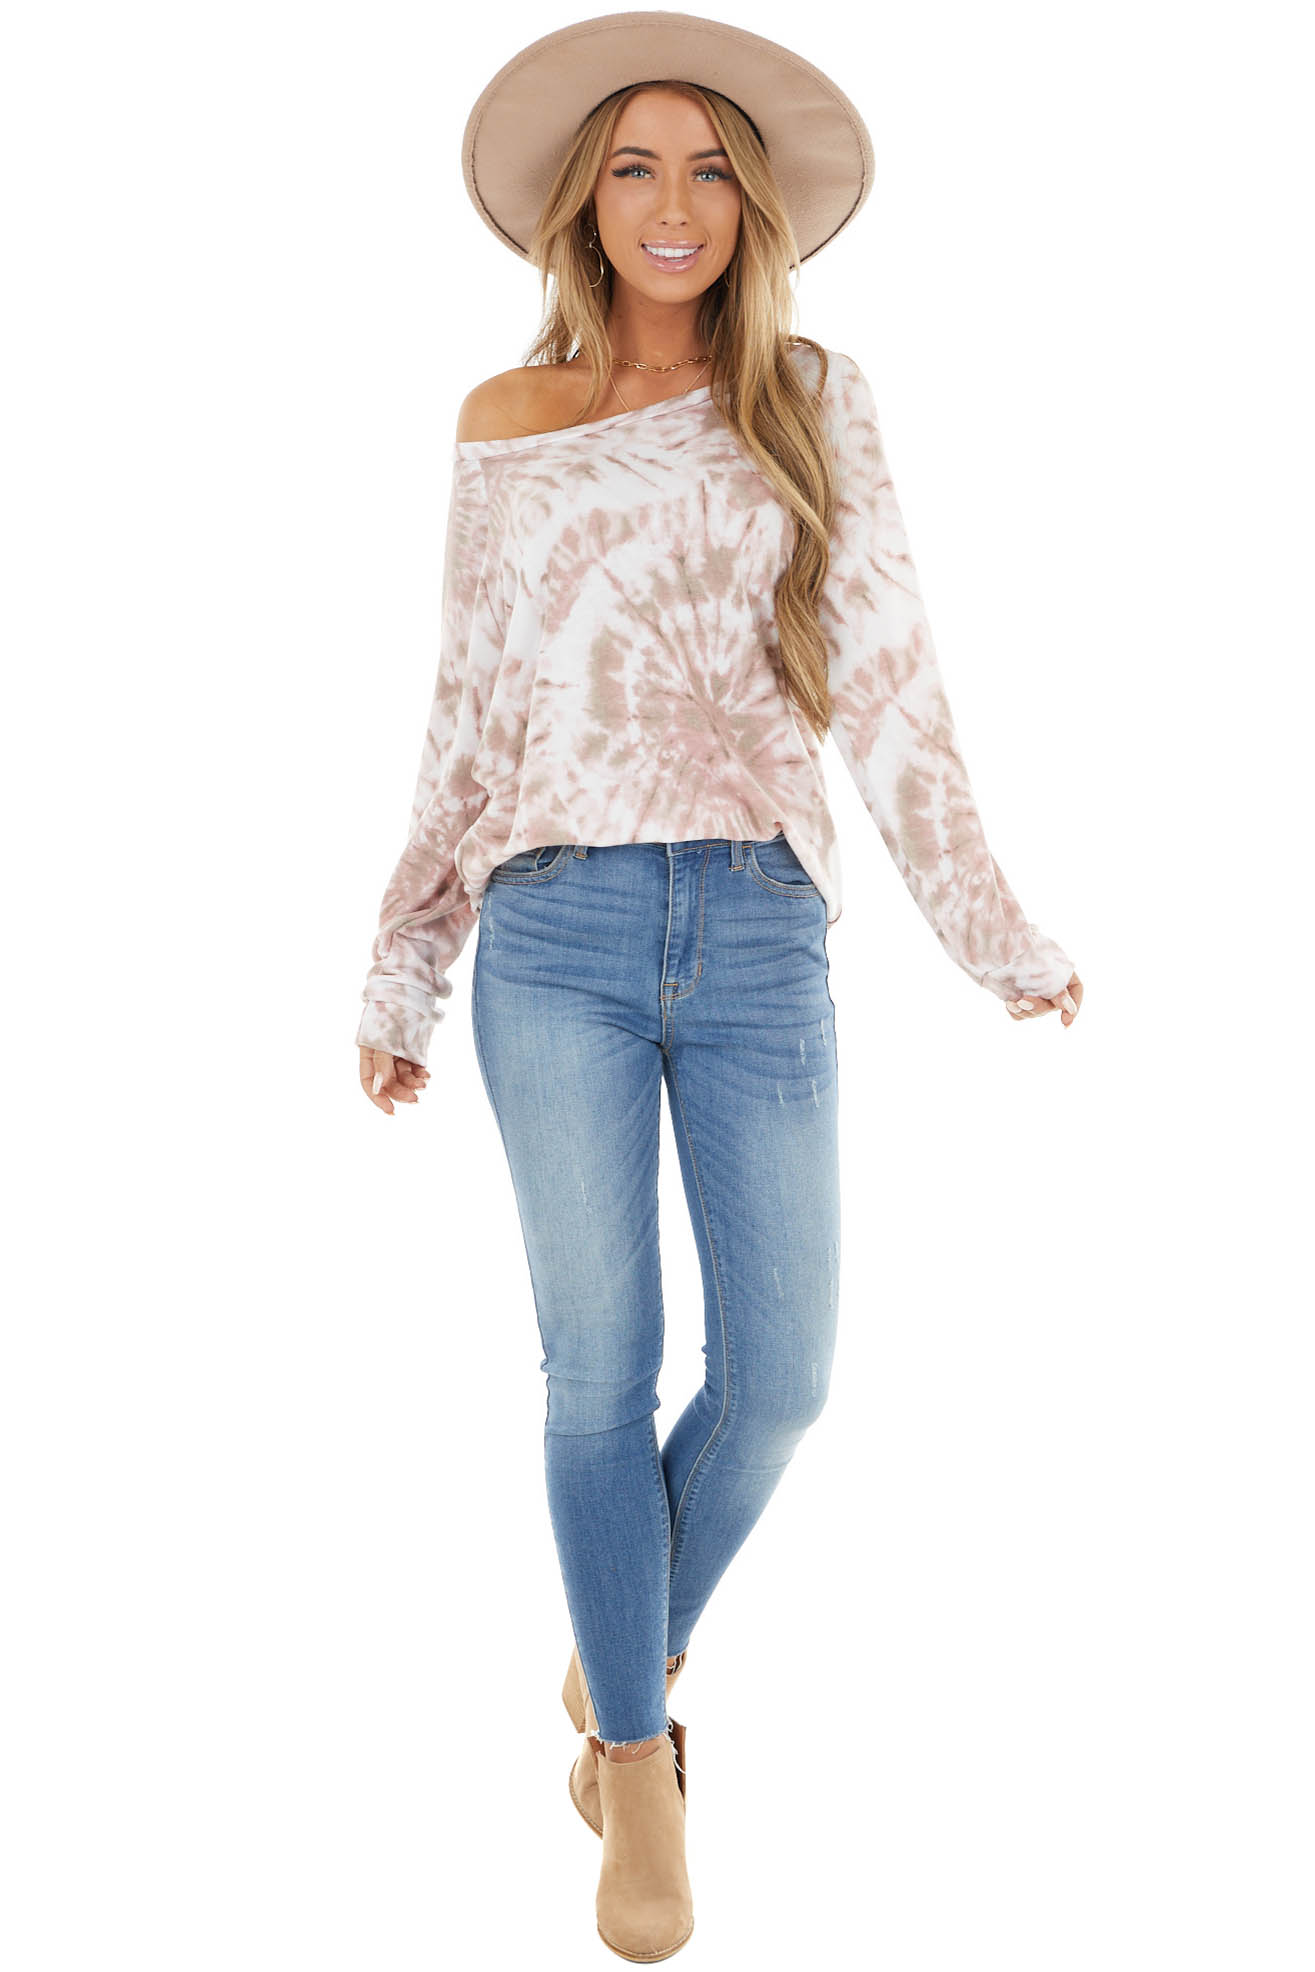 Dusty Rose Tie Dye Pullover Top With Long Sleeves